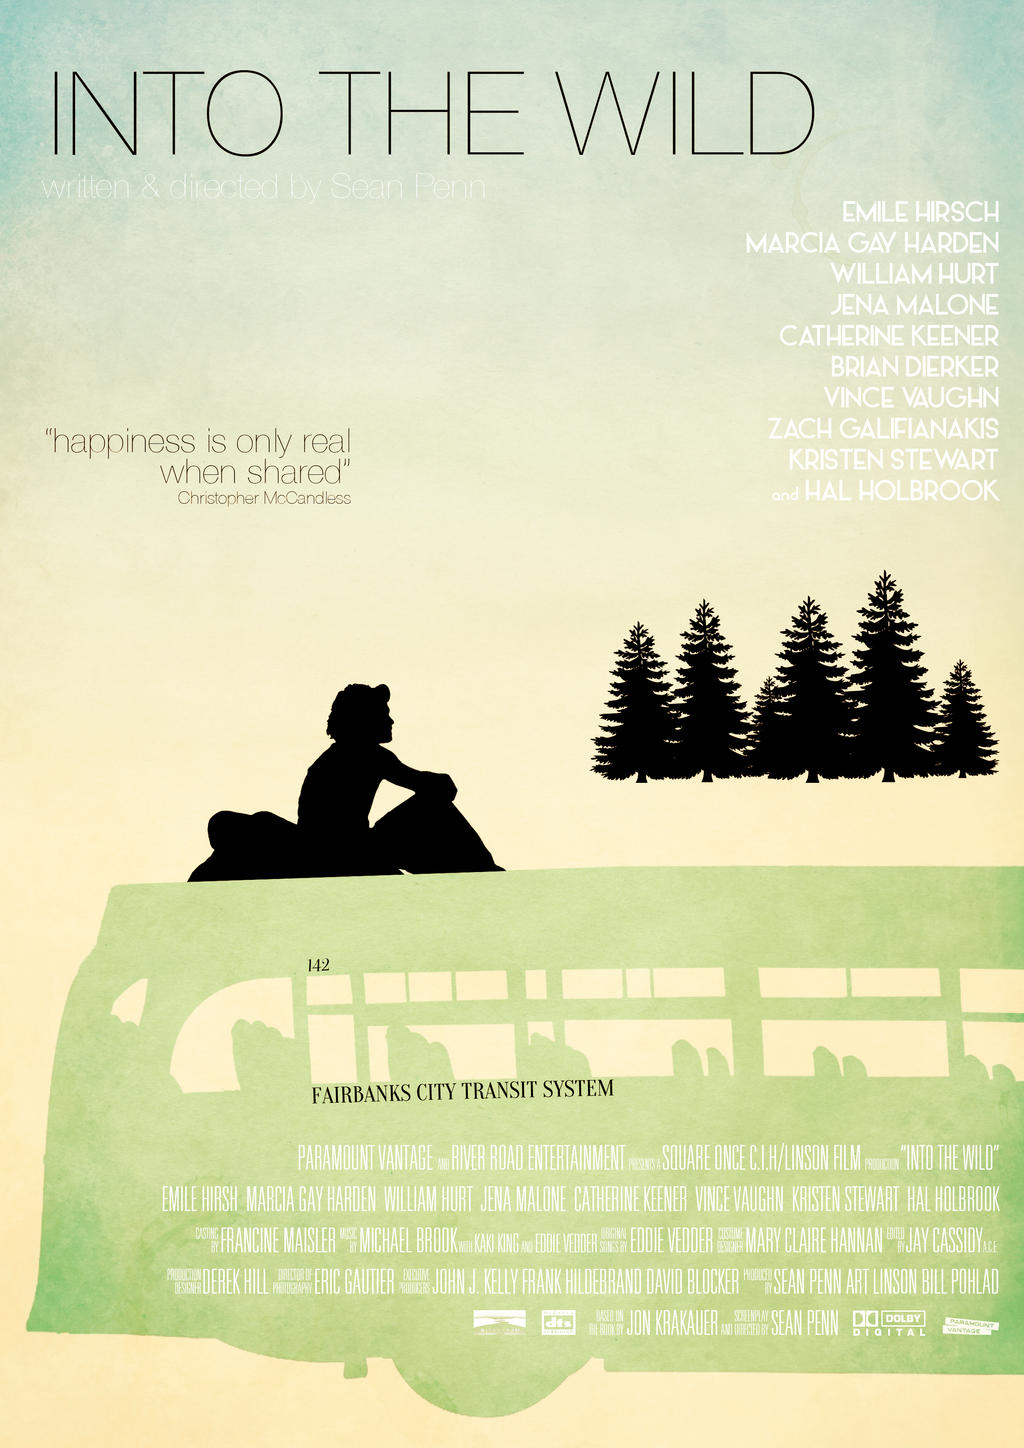 Into The Wild - Retro Movie Poster by Muska23 on DeviantArt